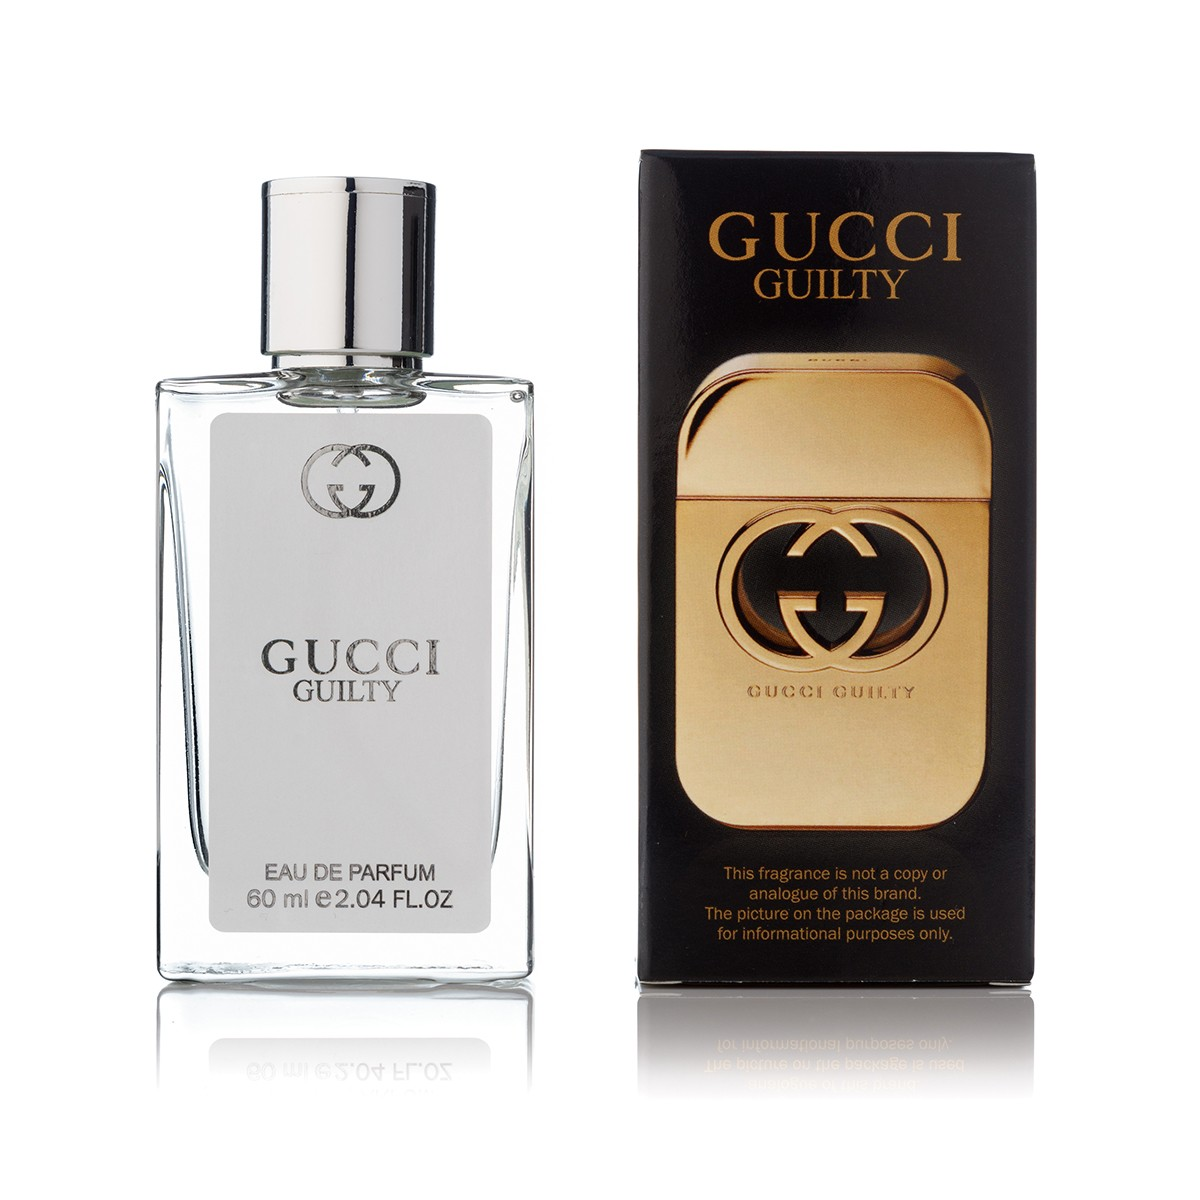 Gucci Guilty edp 60 ml tester color box